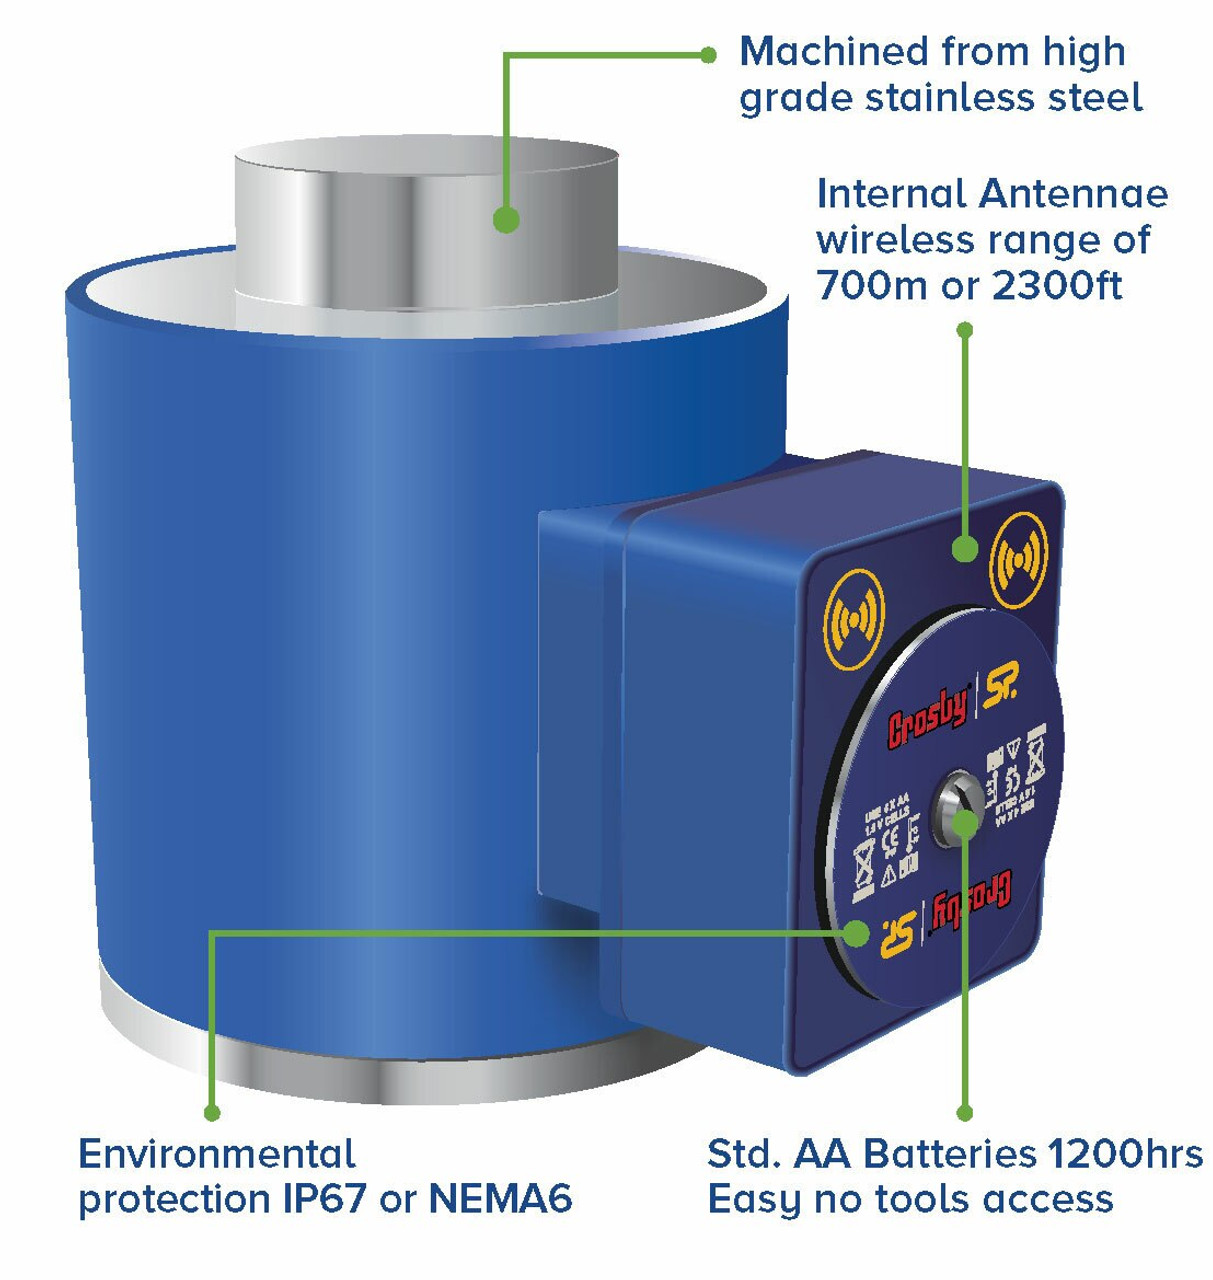 WNI-ATEX Wireless Compression Load Cell | Made in the United Kingdom